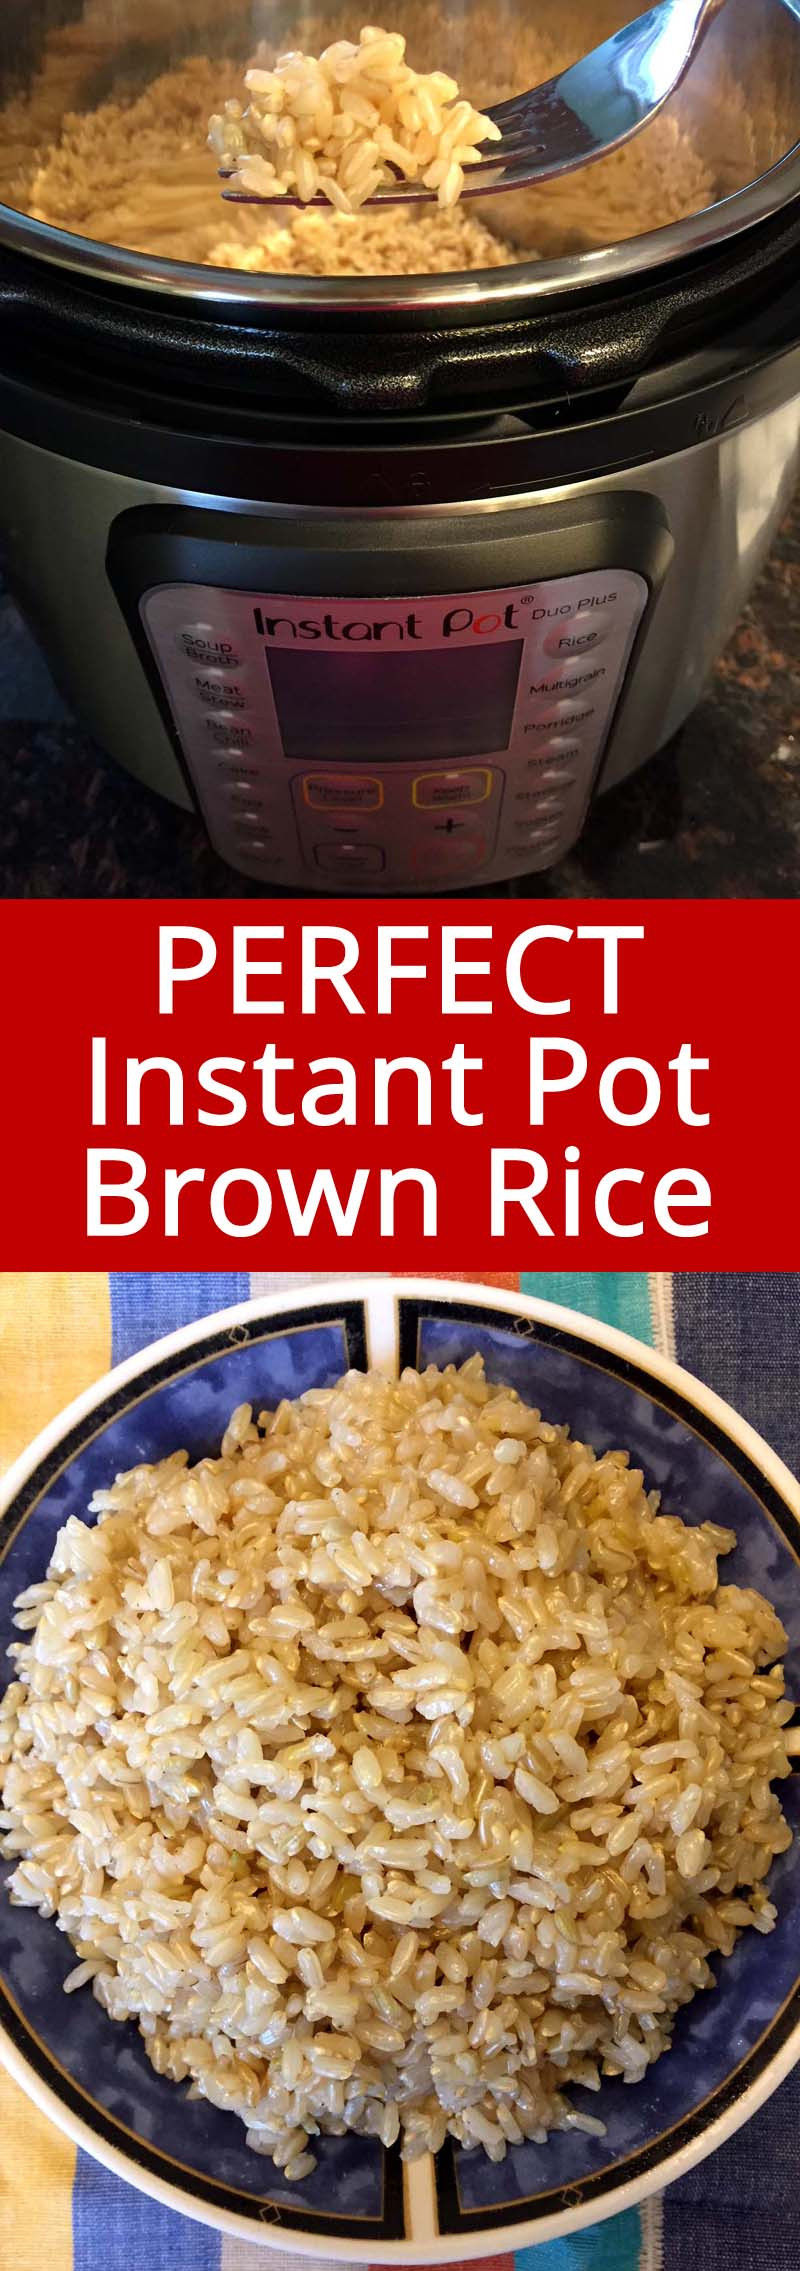 Instant Pot Brown Rice Recipe  Instant Pot Brown Rice – How To Cook Brown Rice In A